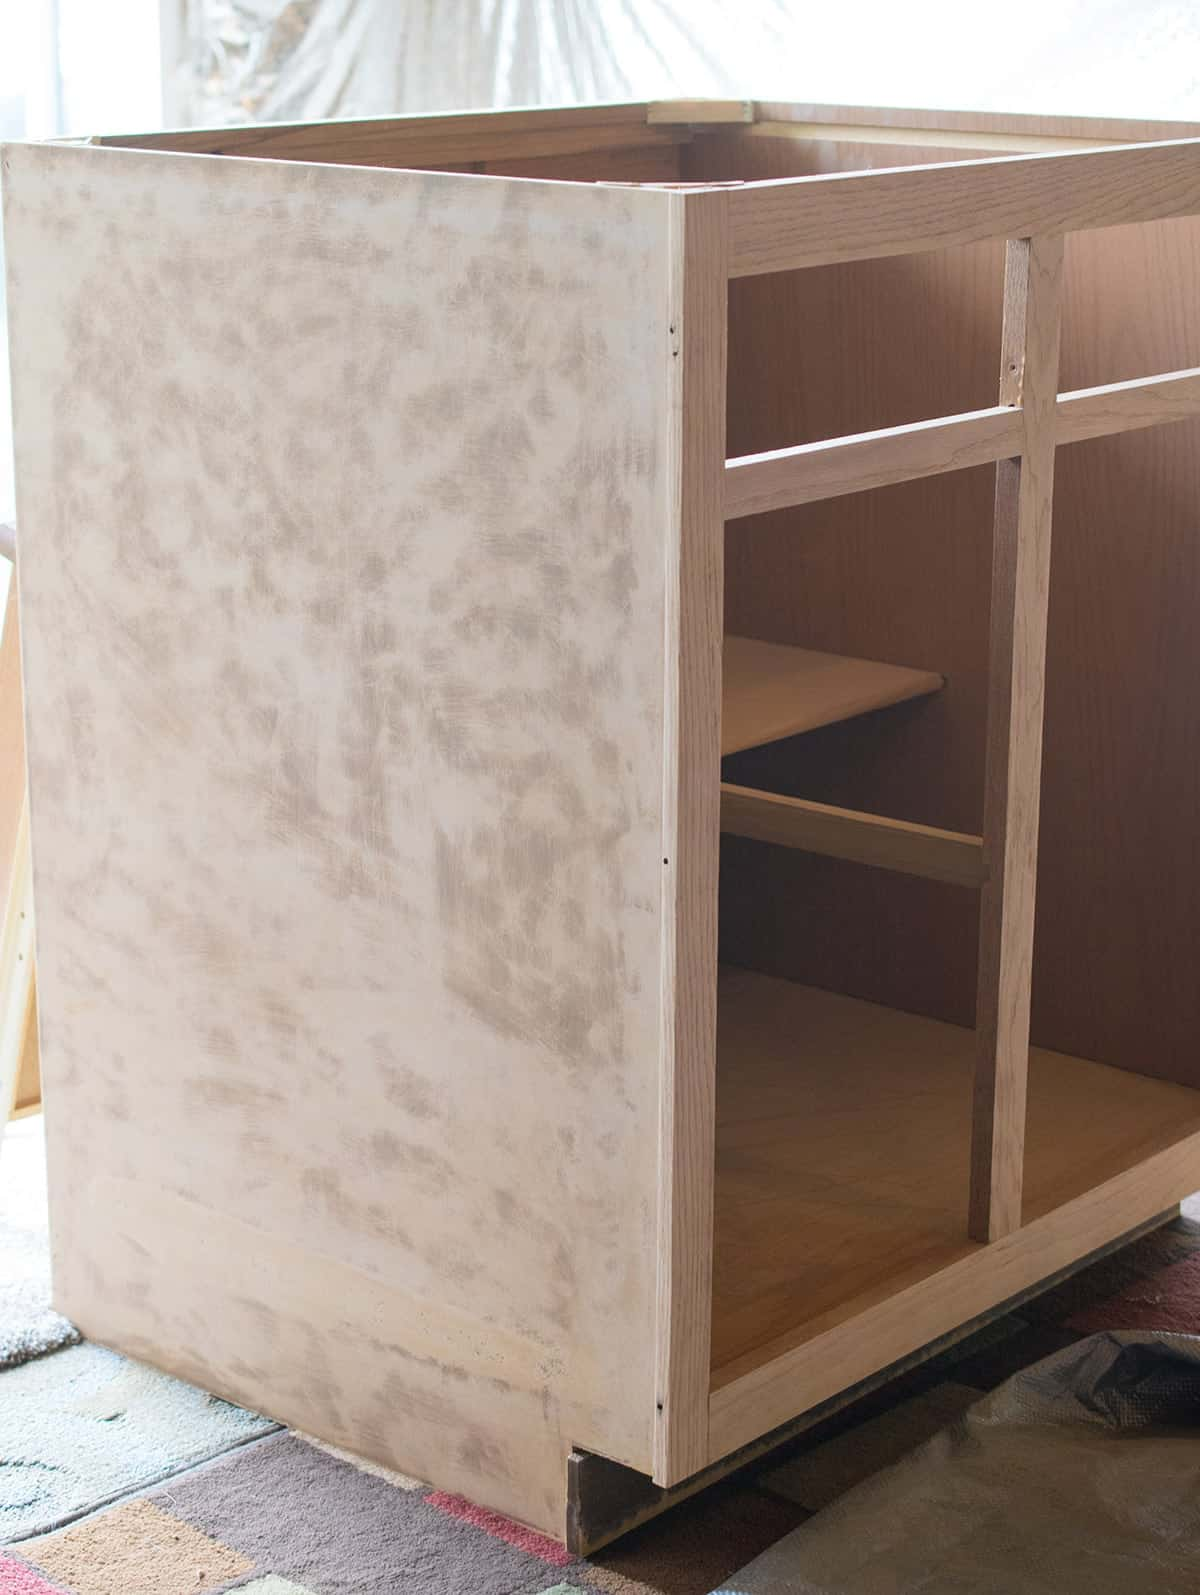 Sanded section of kitchen cabinet with doors and counter removed.